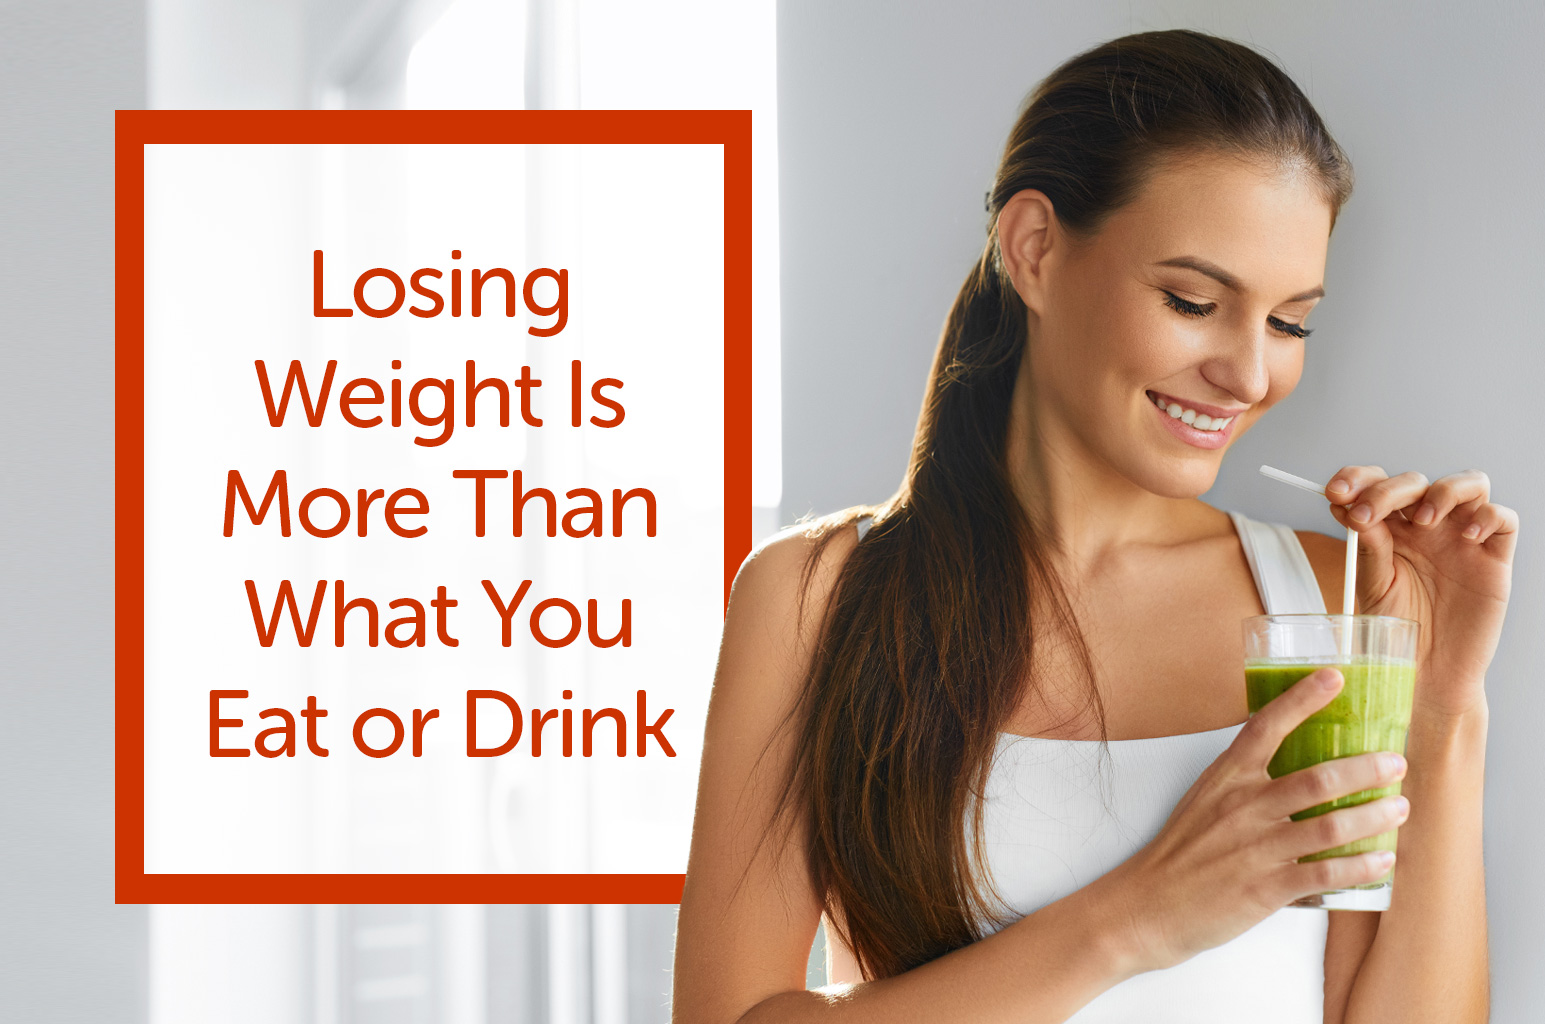 Losing Weight Is More Than What You Eat or Drink